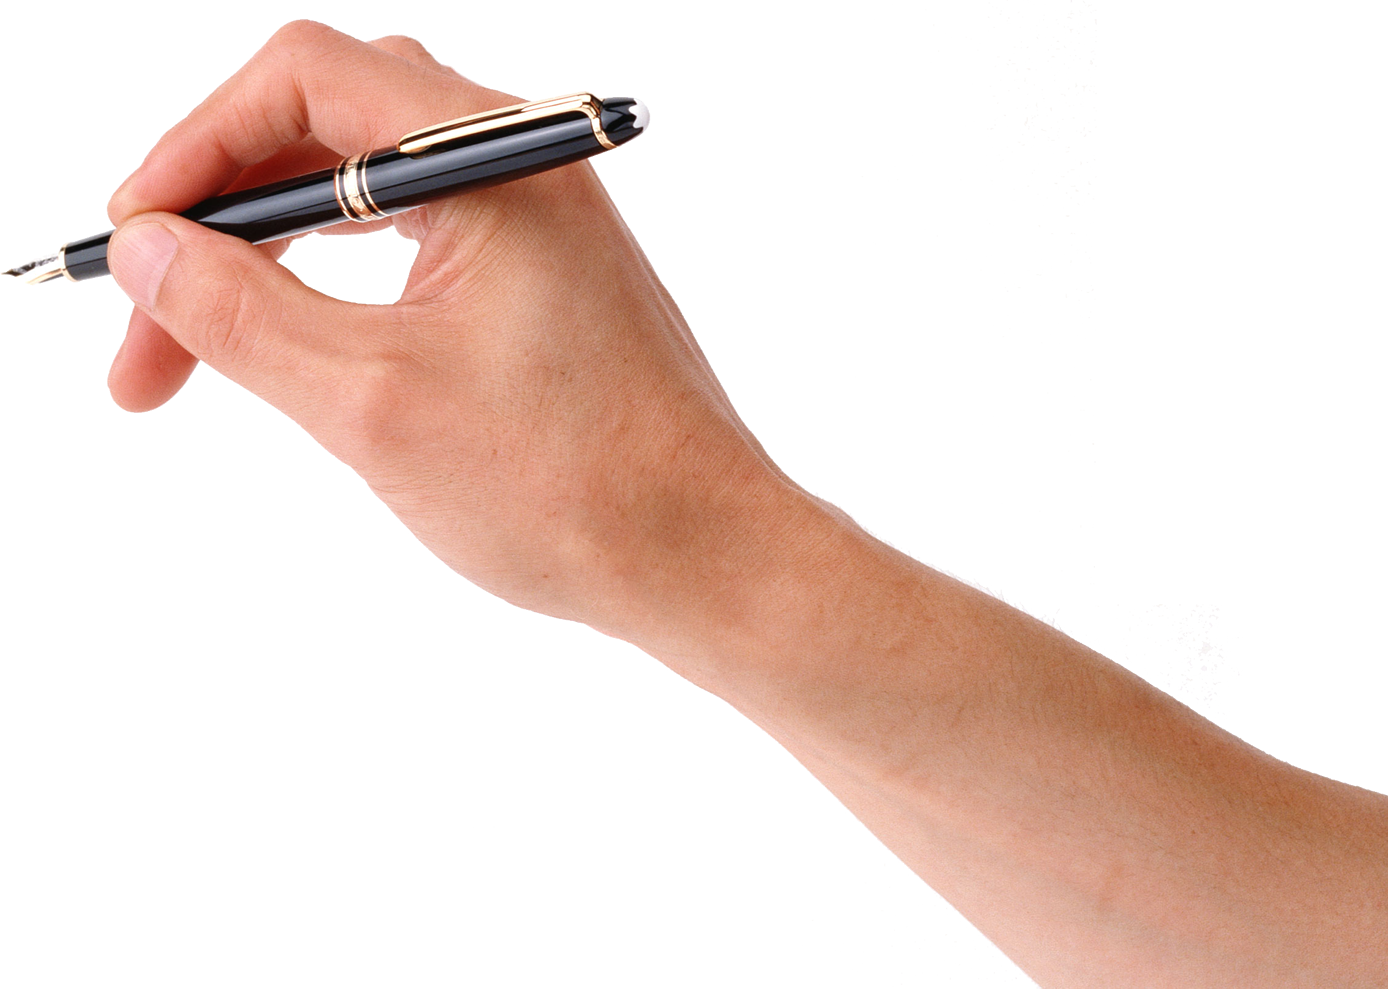 Pen Png Images Hand With Pen Free Download Free Transparent Png Logos Pencil hand free icon we have about (61 files) free icon in ico, png format. pen png images hand with pen free